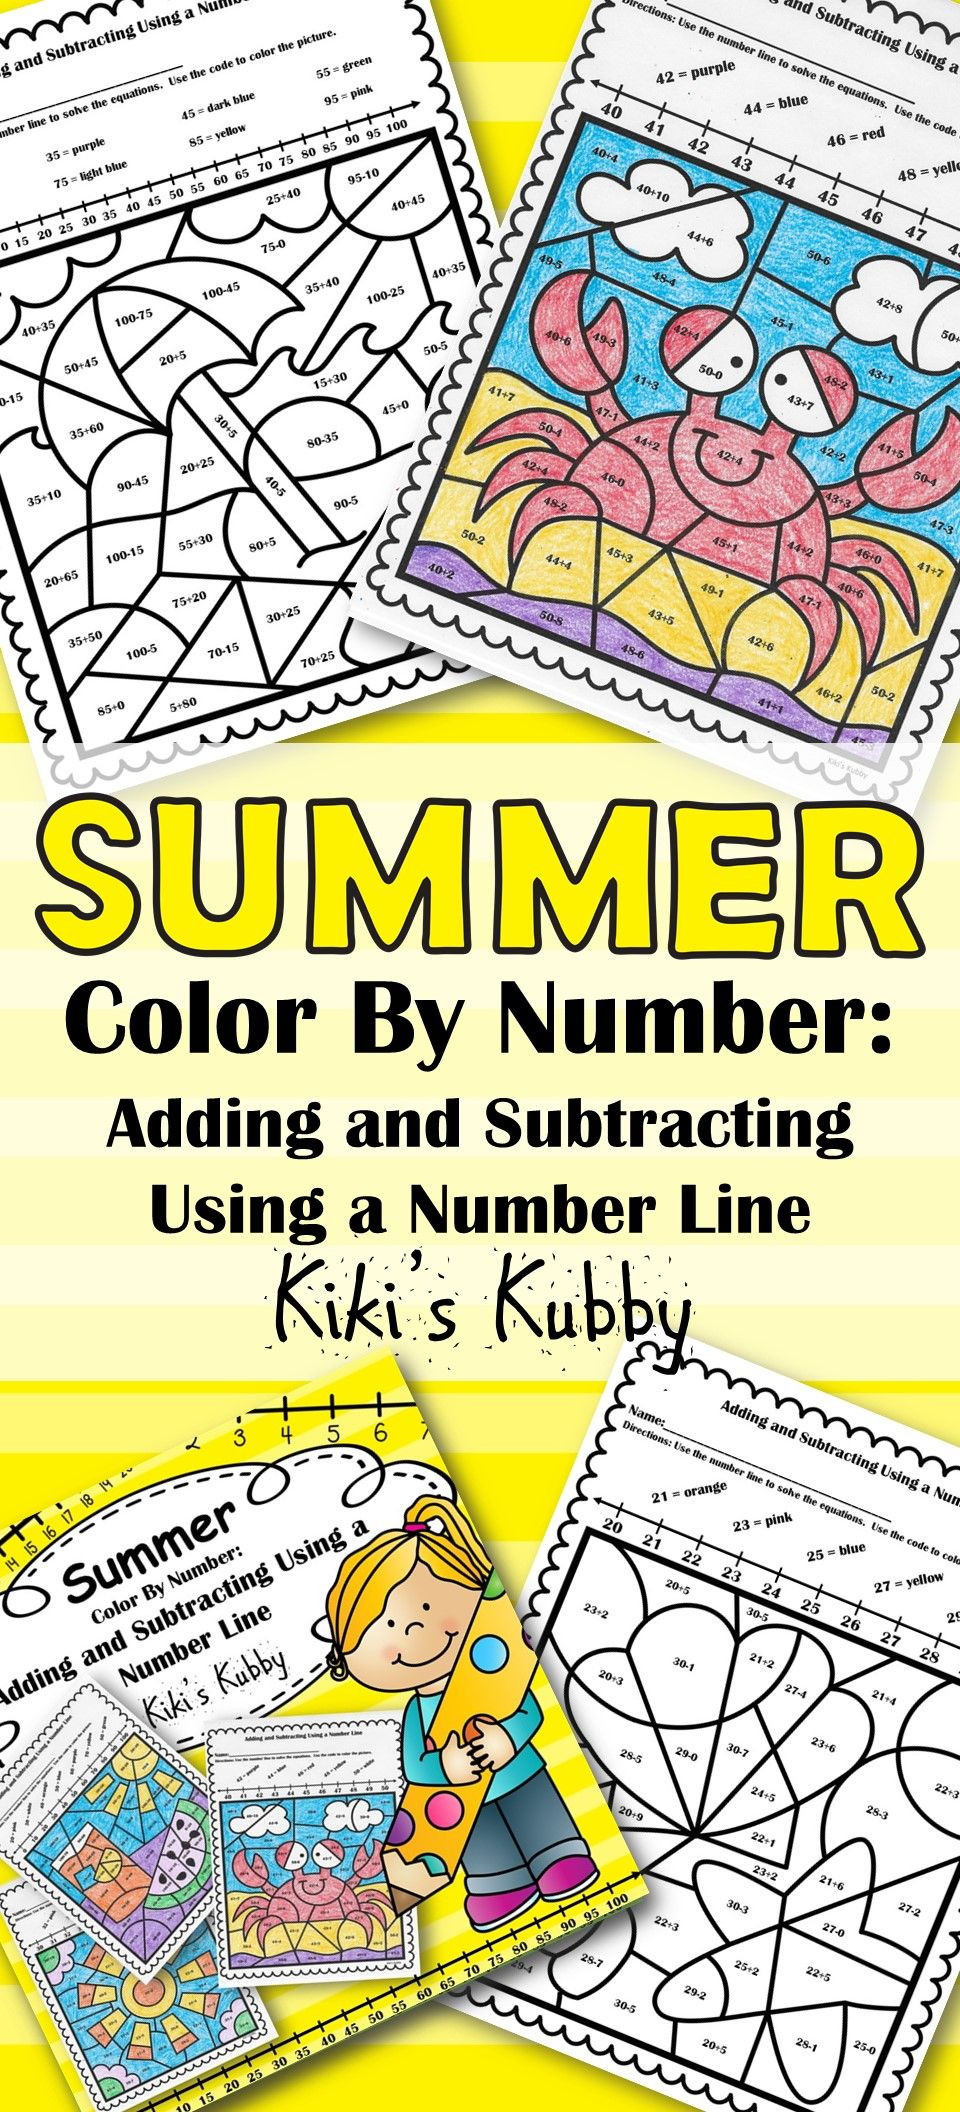 Unique Color By Number Spring Sketch - Coloring Page ...